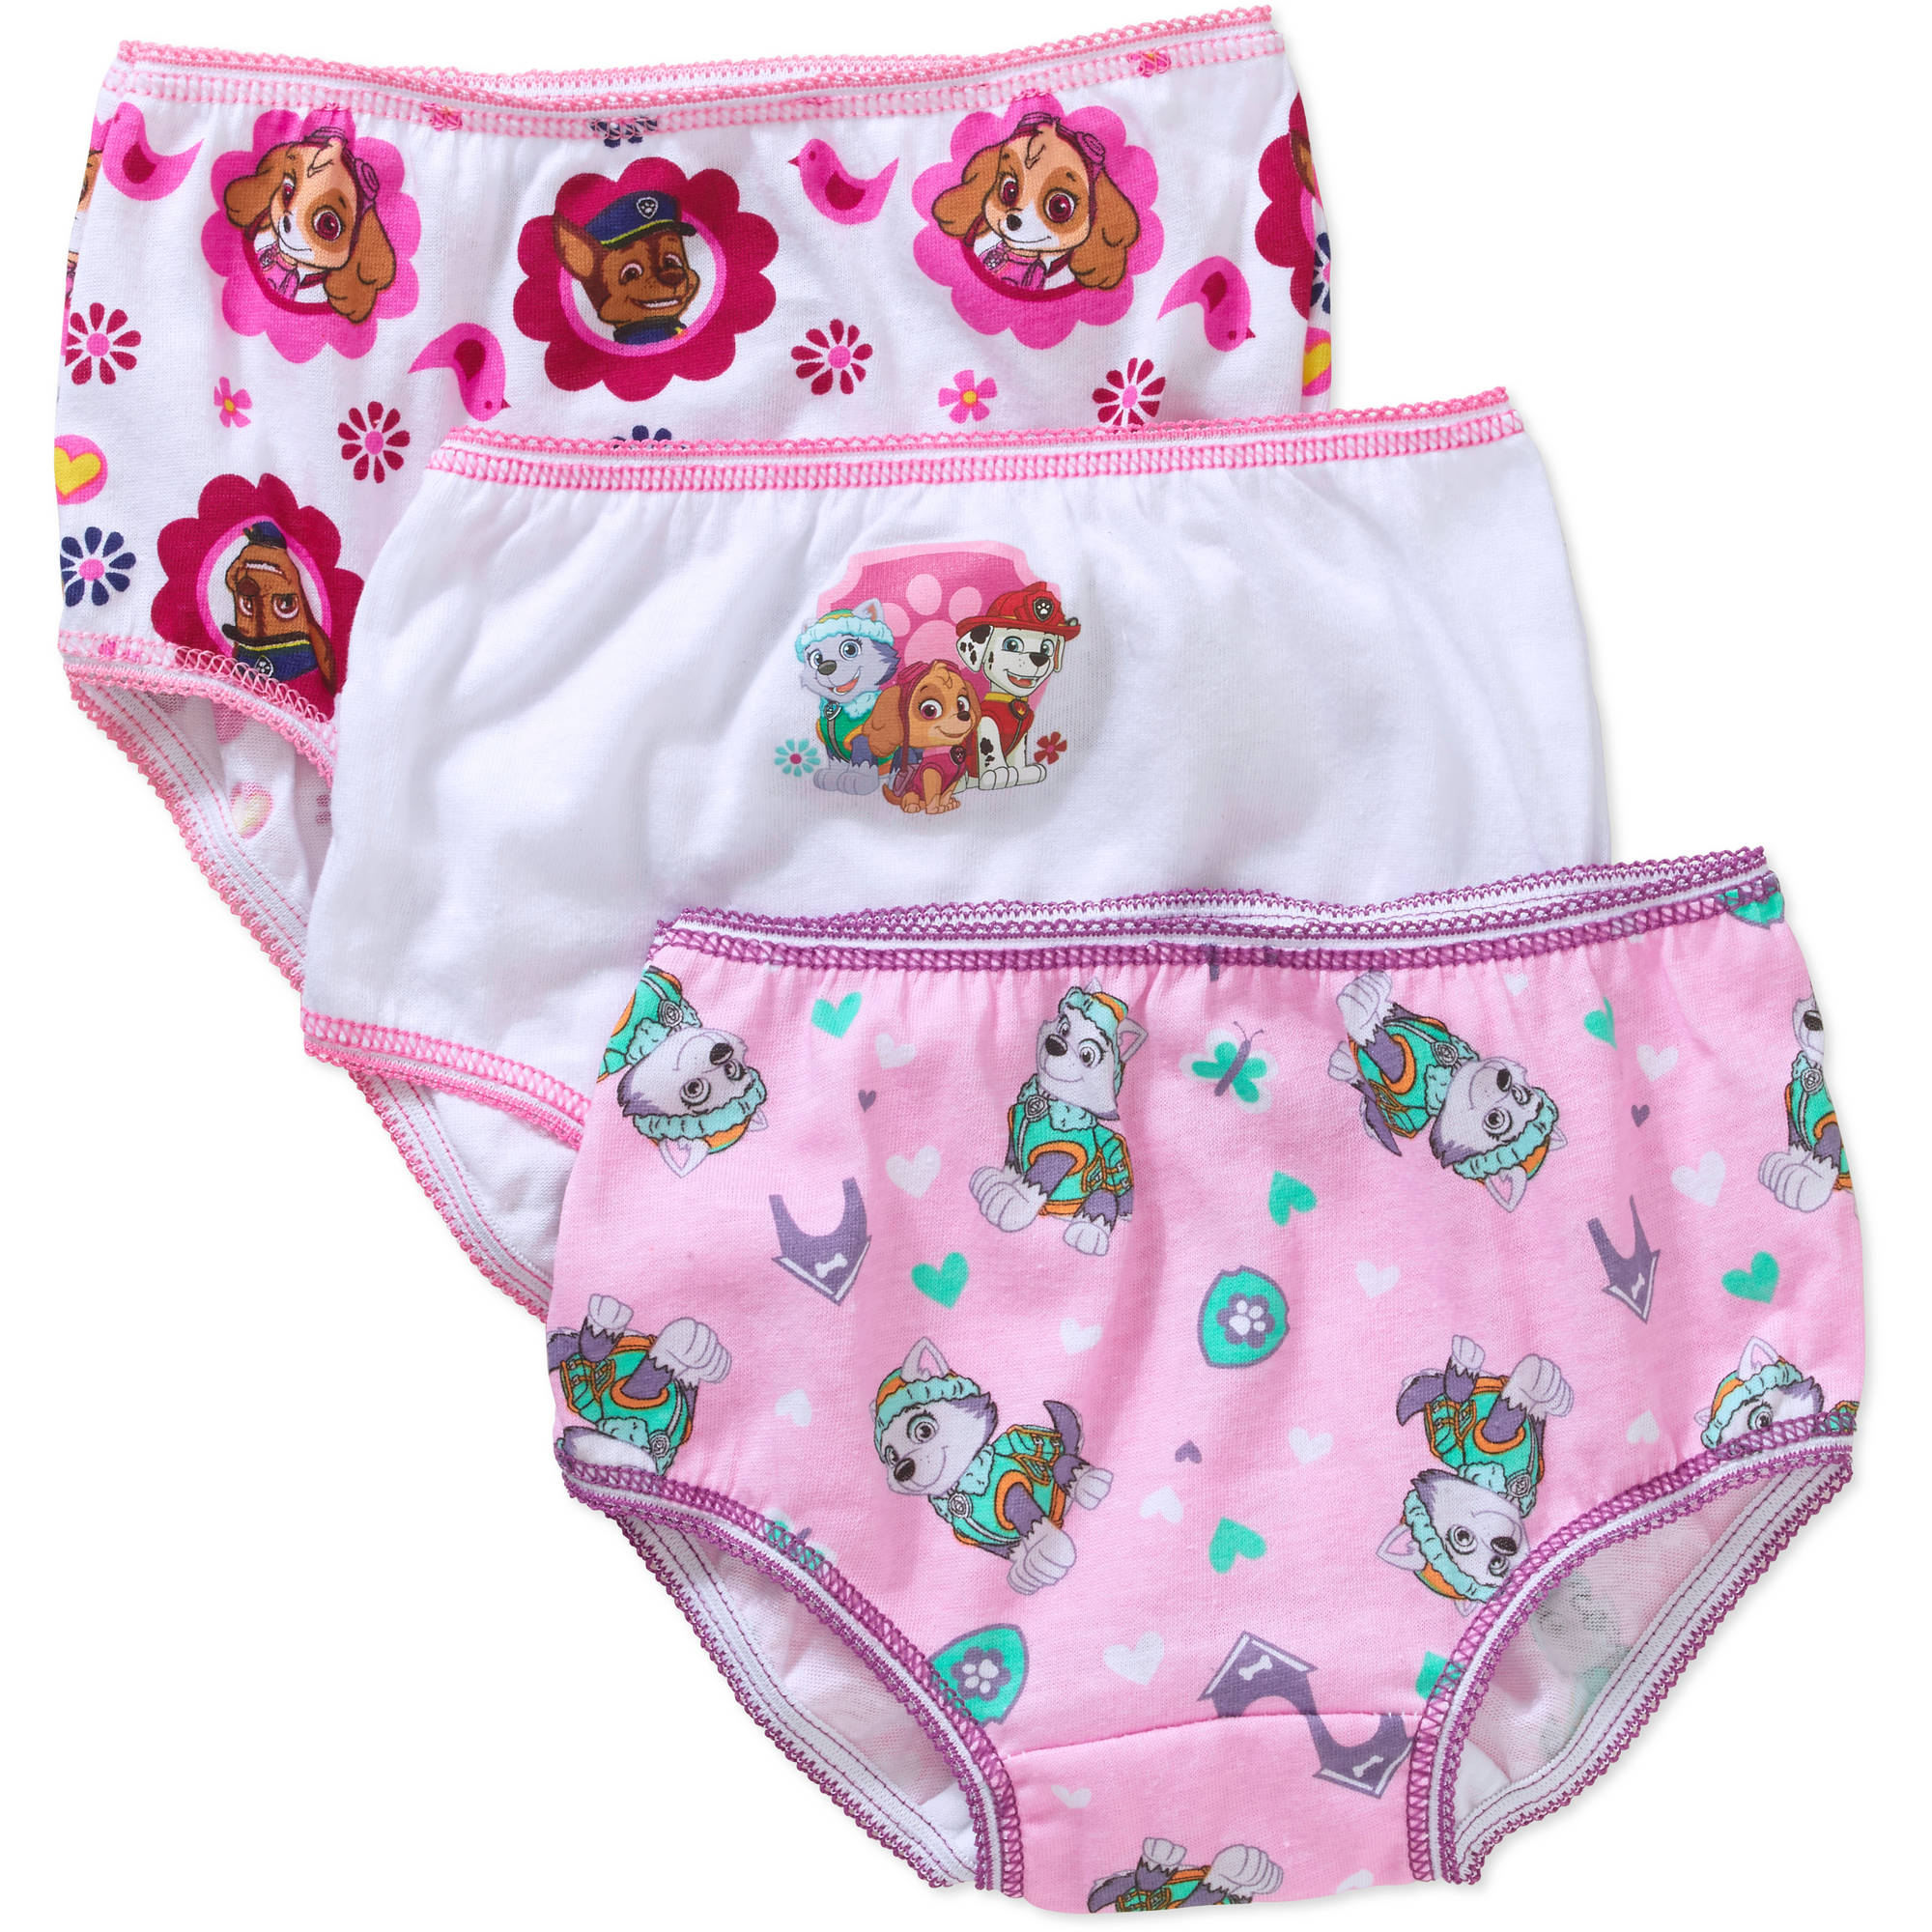 Faded Glory Girls Cotton Hipster Panty, 9 pack - Walmart.com